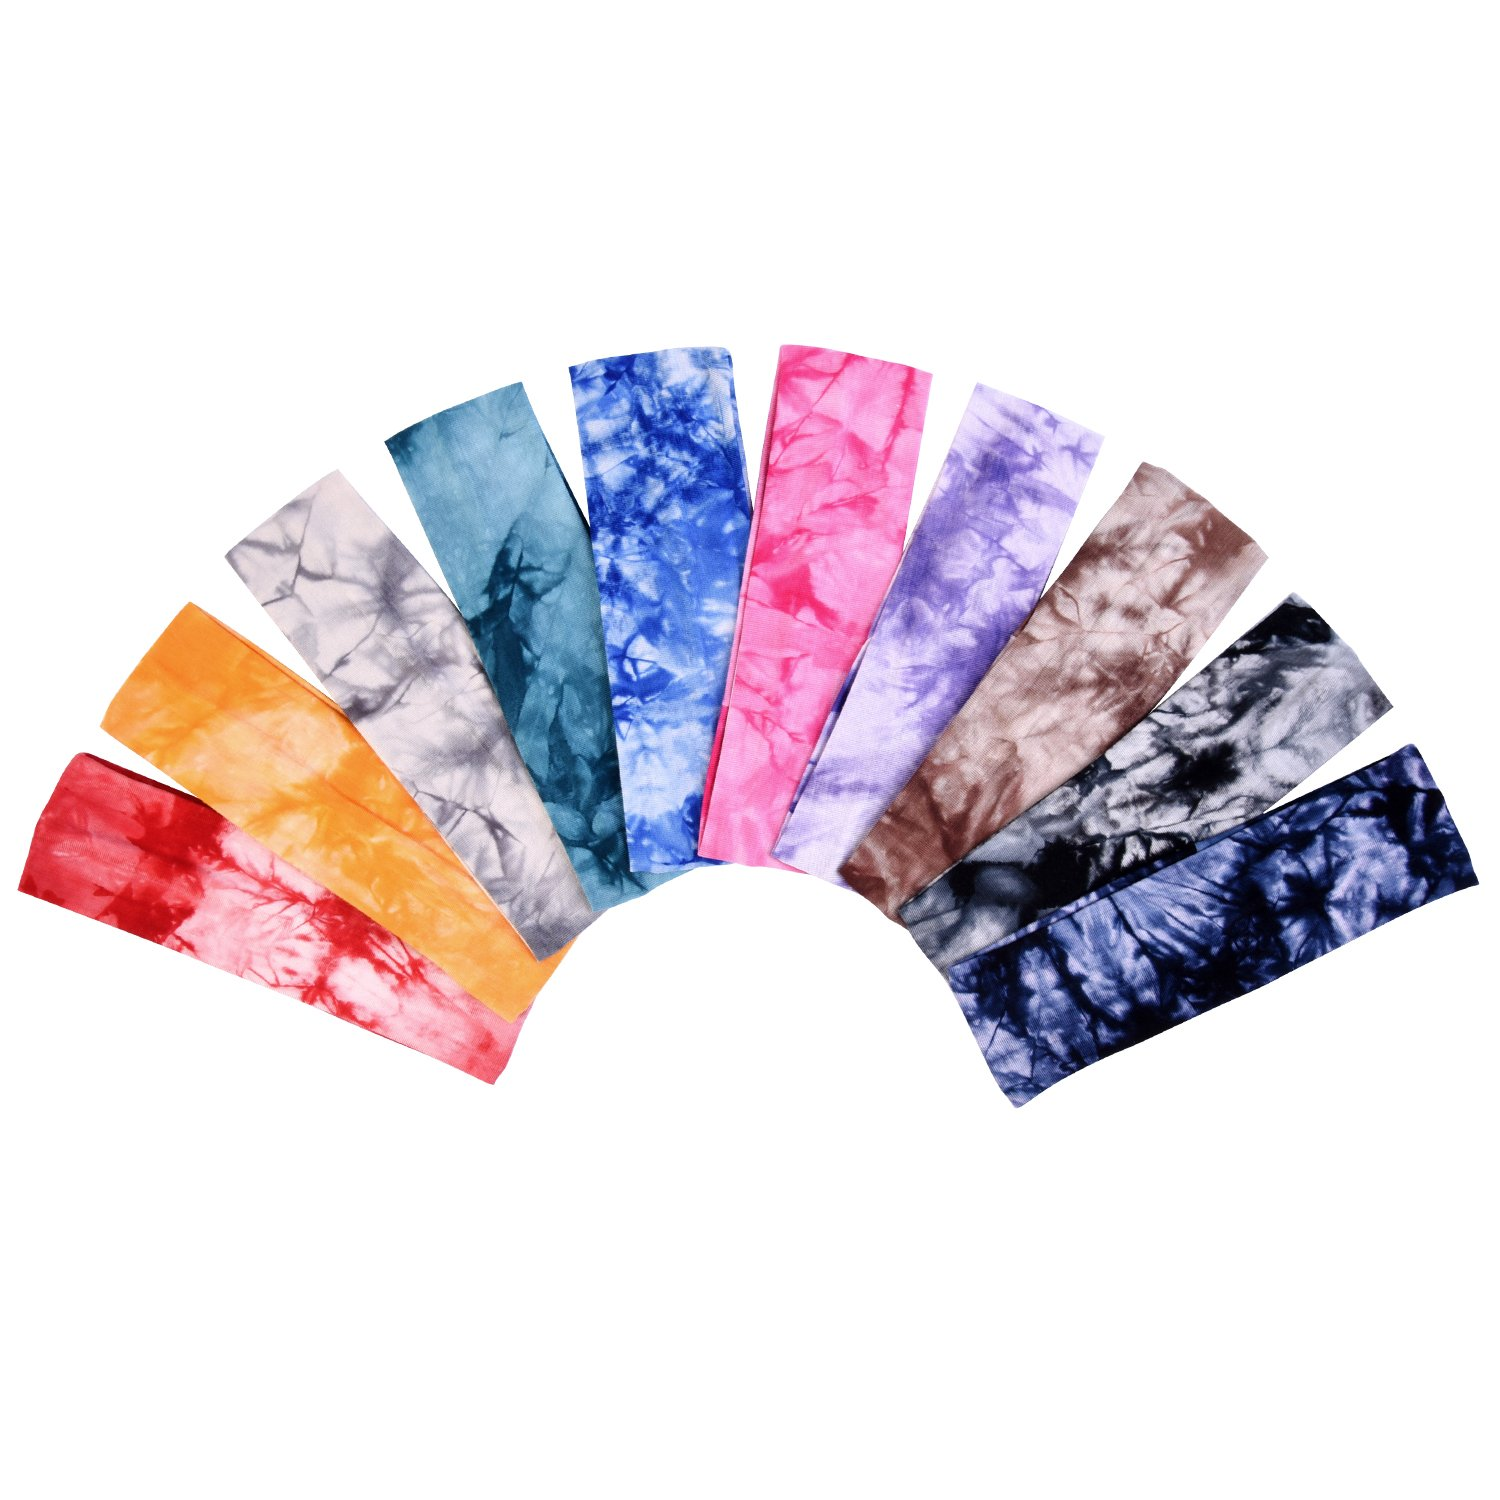 eBoot Tie Dye Headbands Cotton Stretch Headbands Elastic Yoga Hairband for Teens Girls Women Adults, Assorted Colors, 10 Pieces